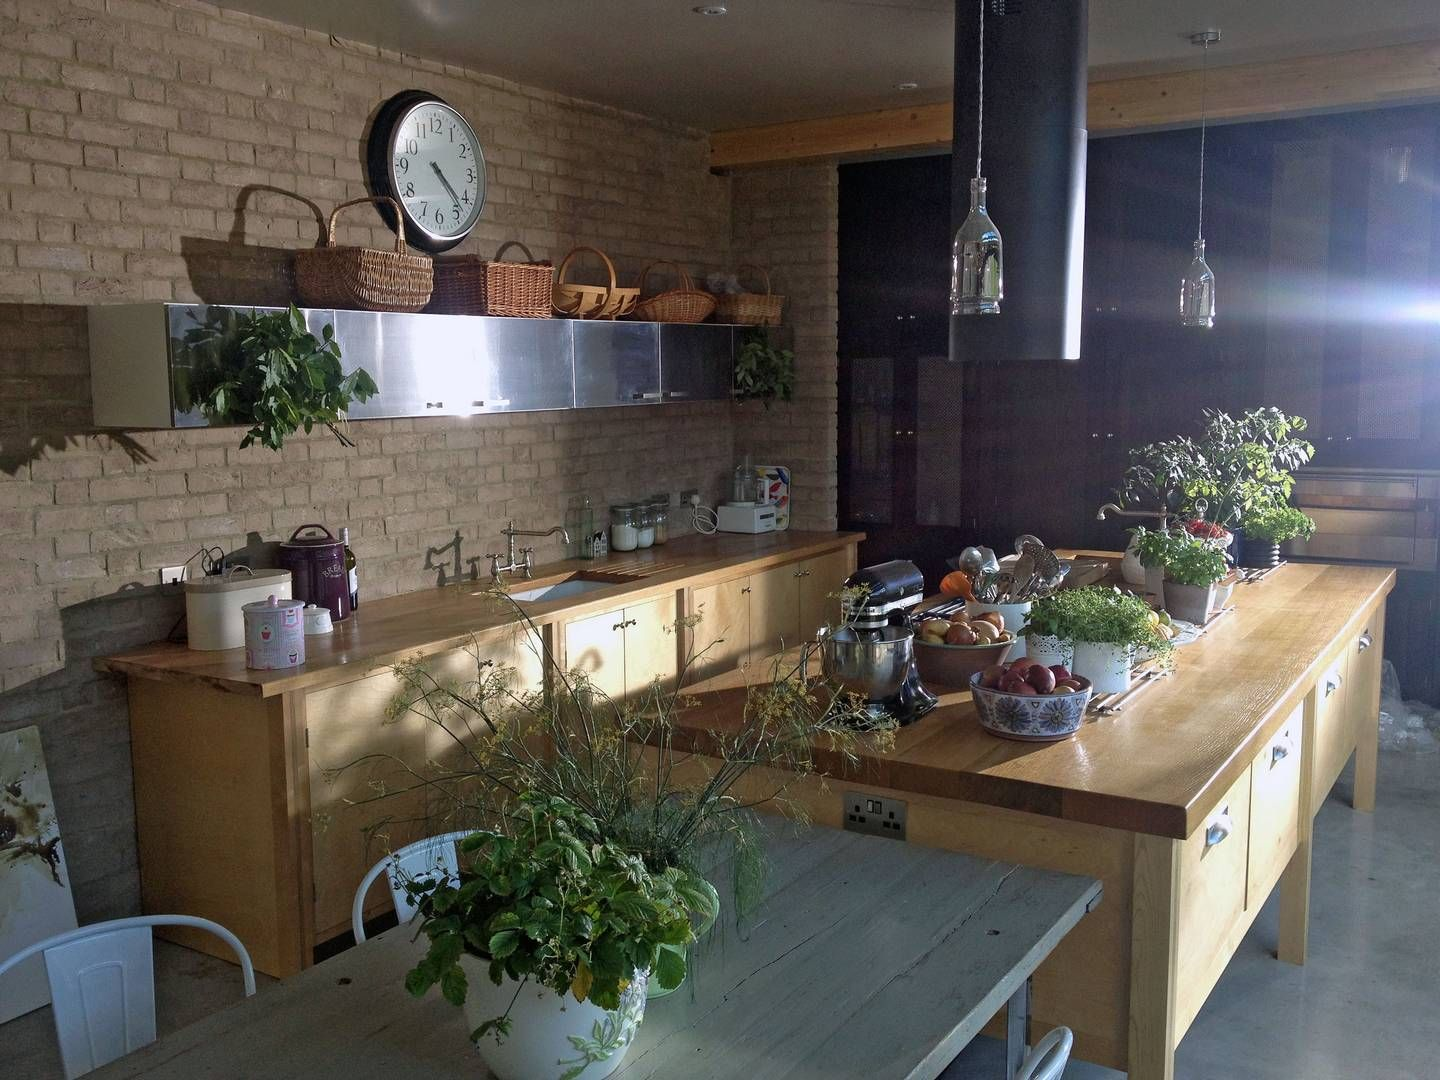 grand designs kitchen | architecture | pinterest | grand designs